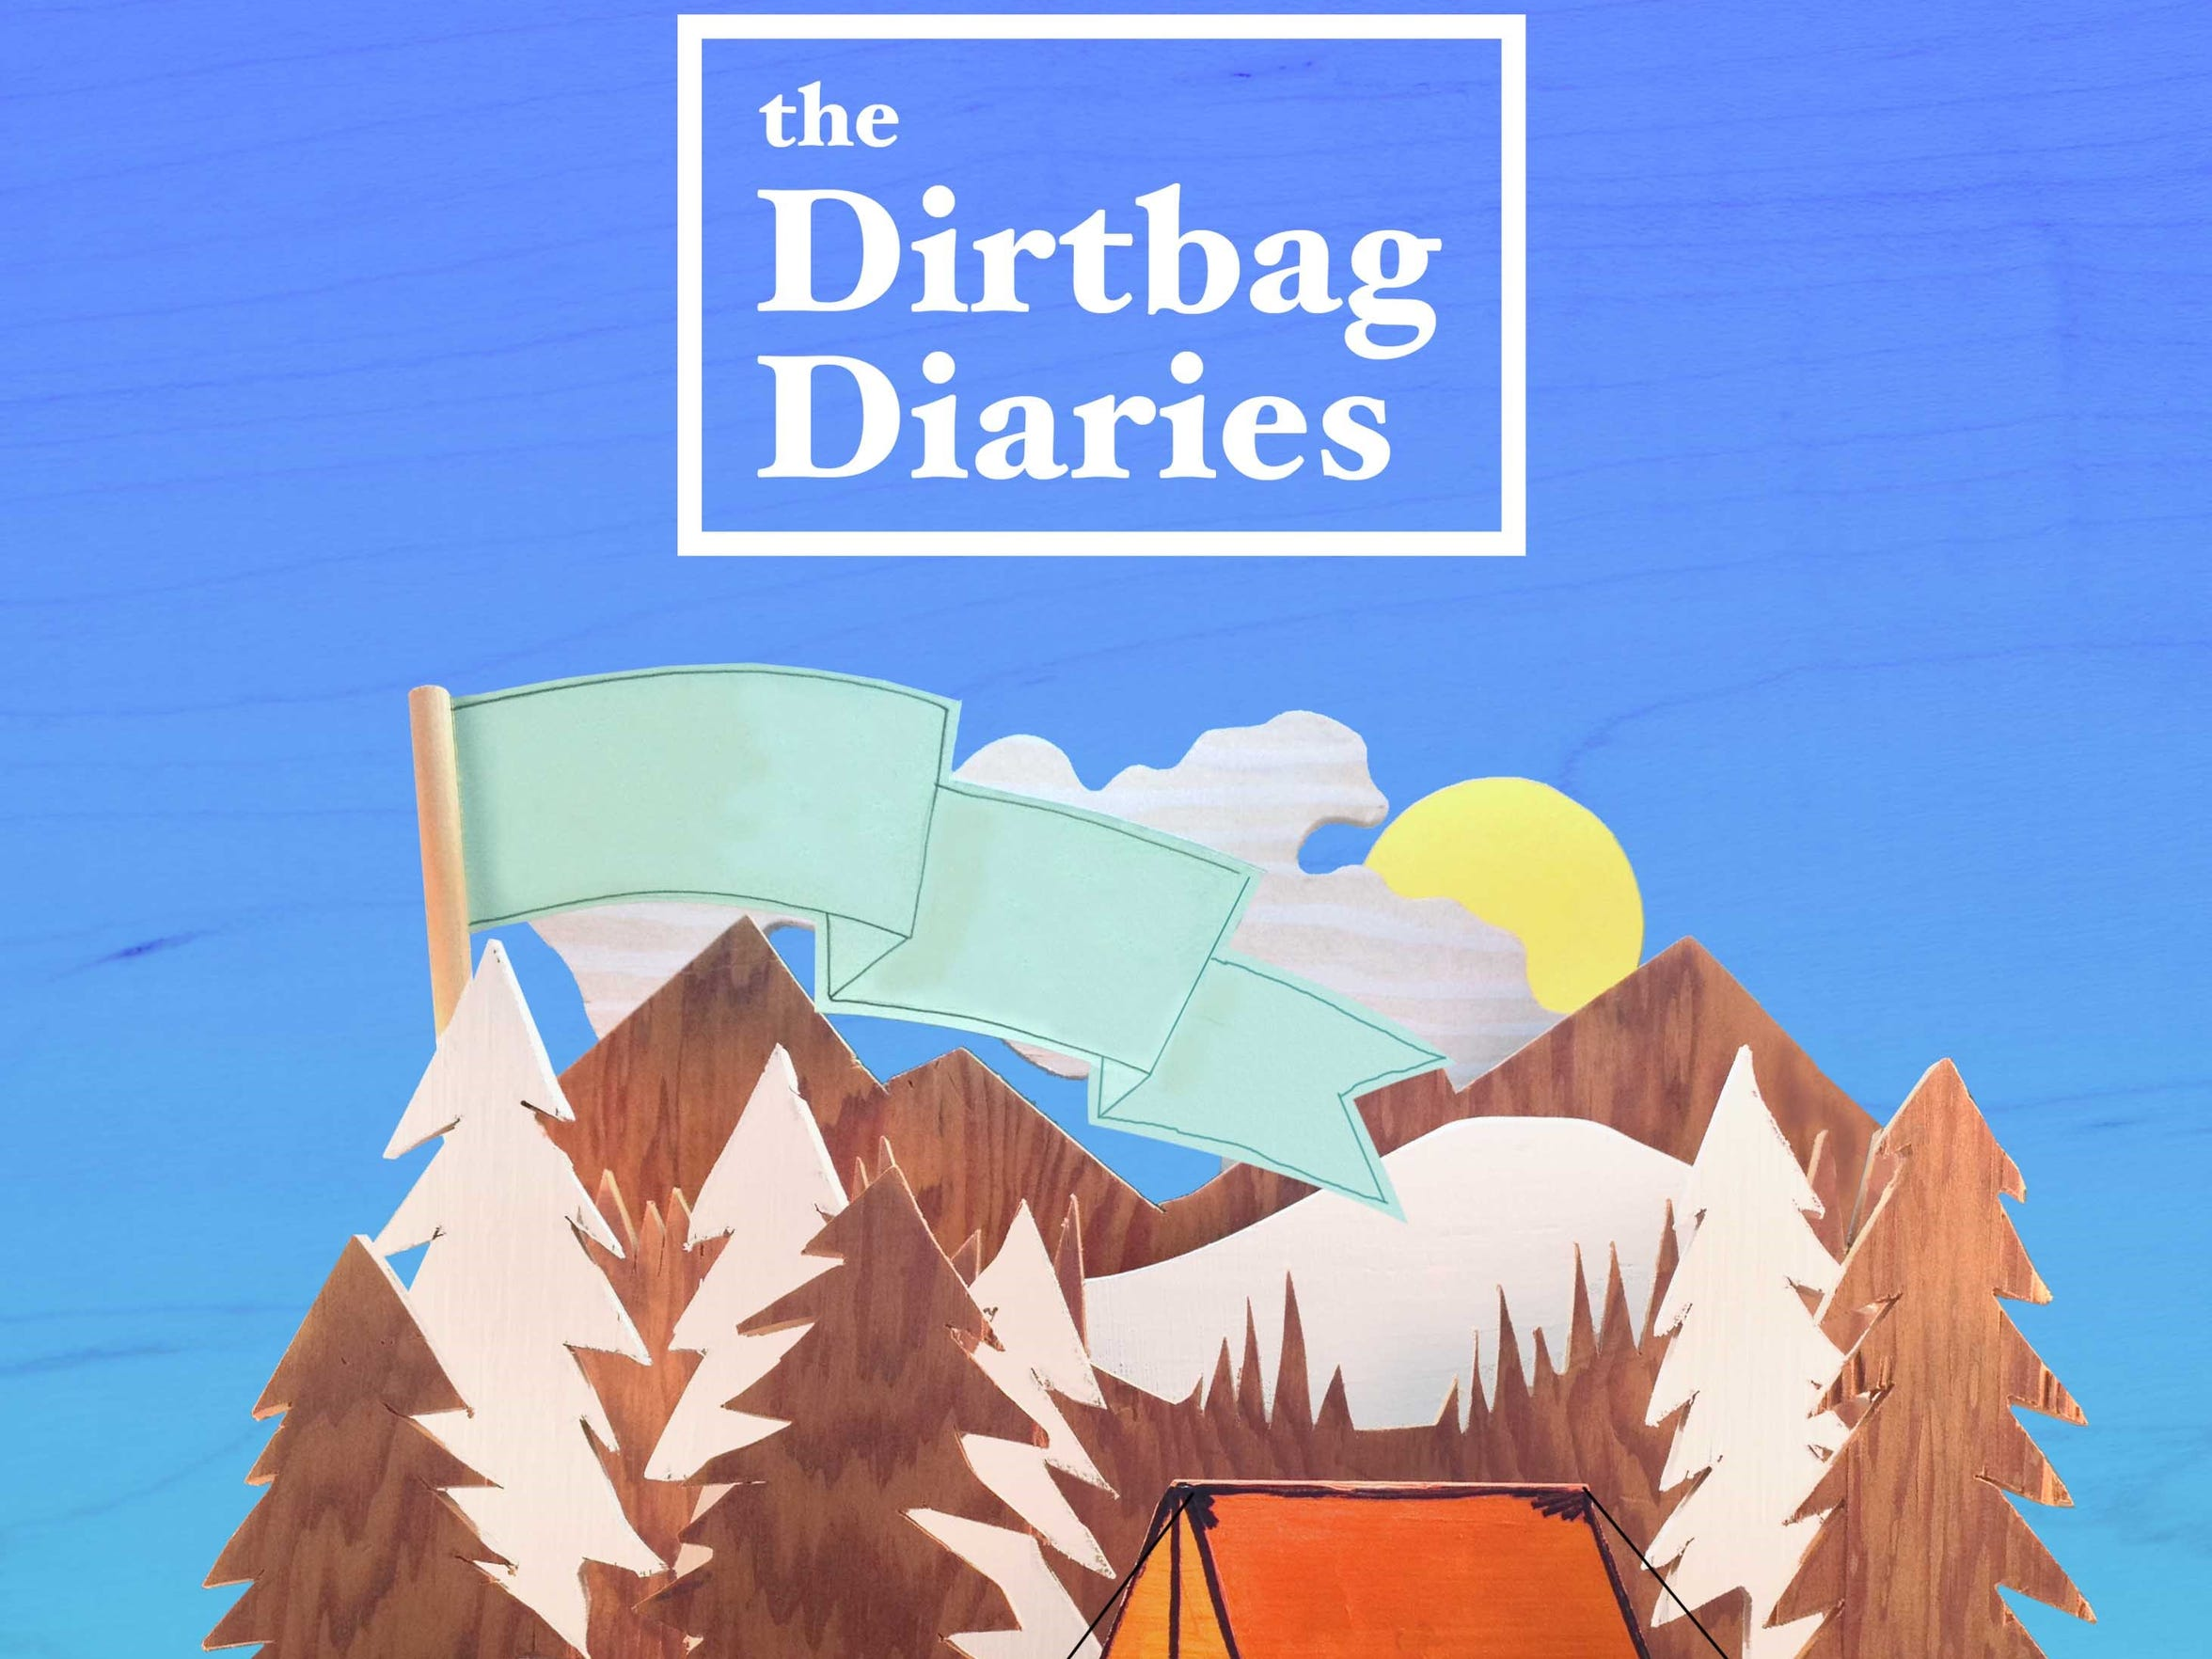 The Dirtbag Diaries is a podcast for outdoor adventurers.